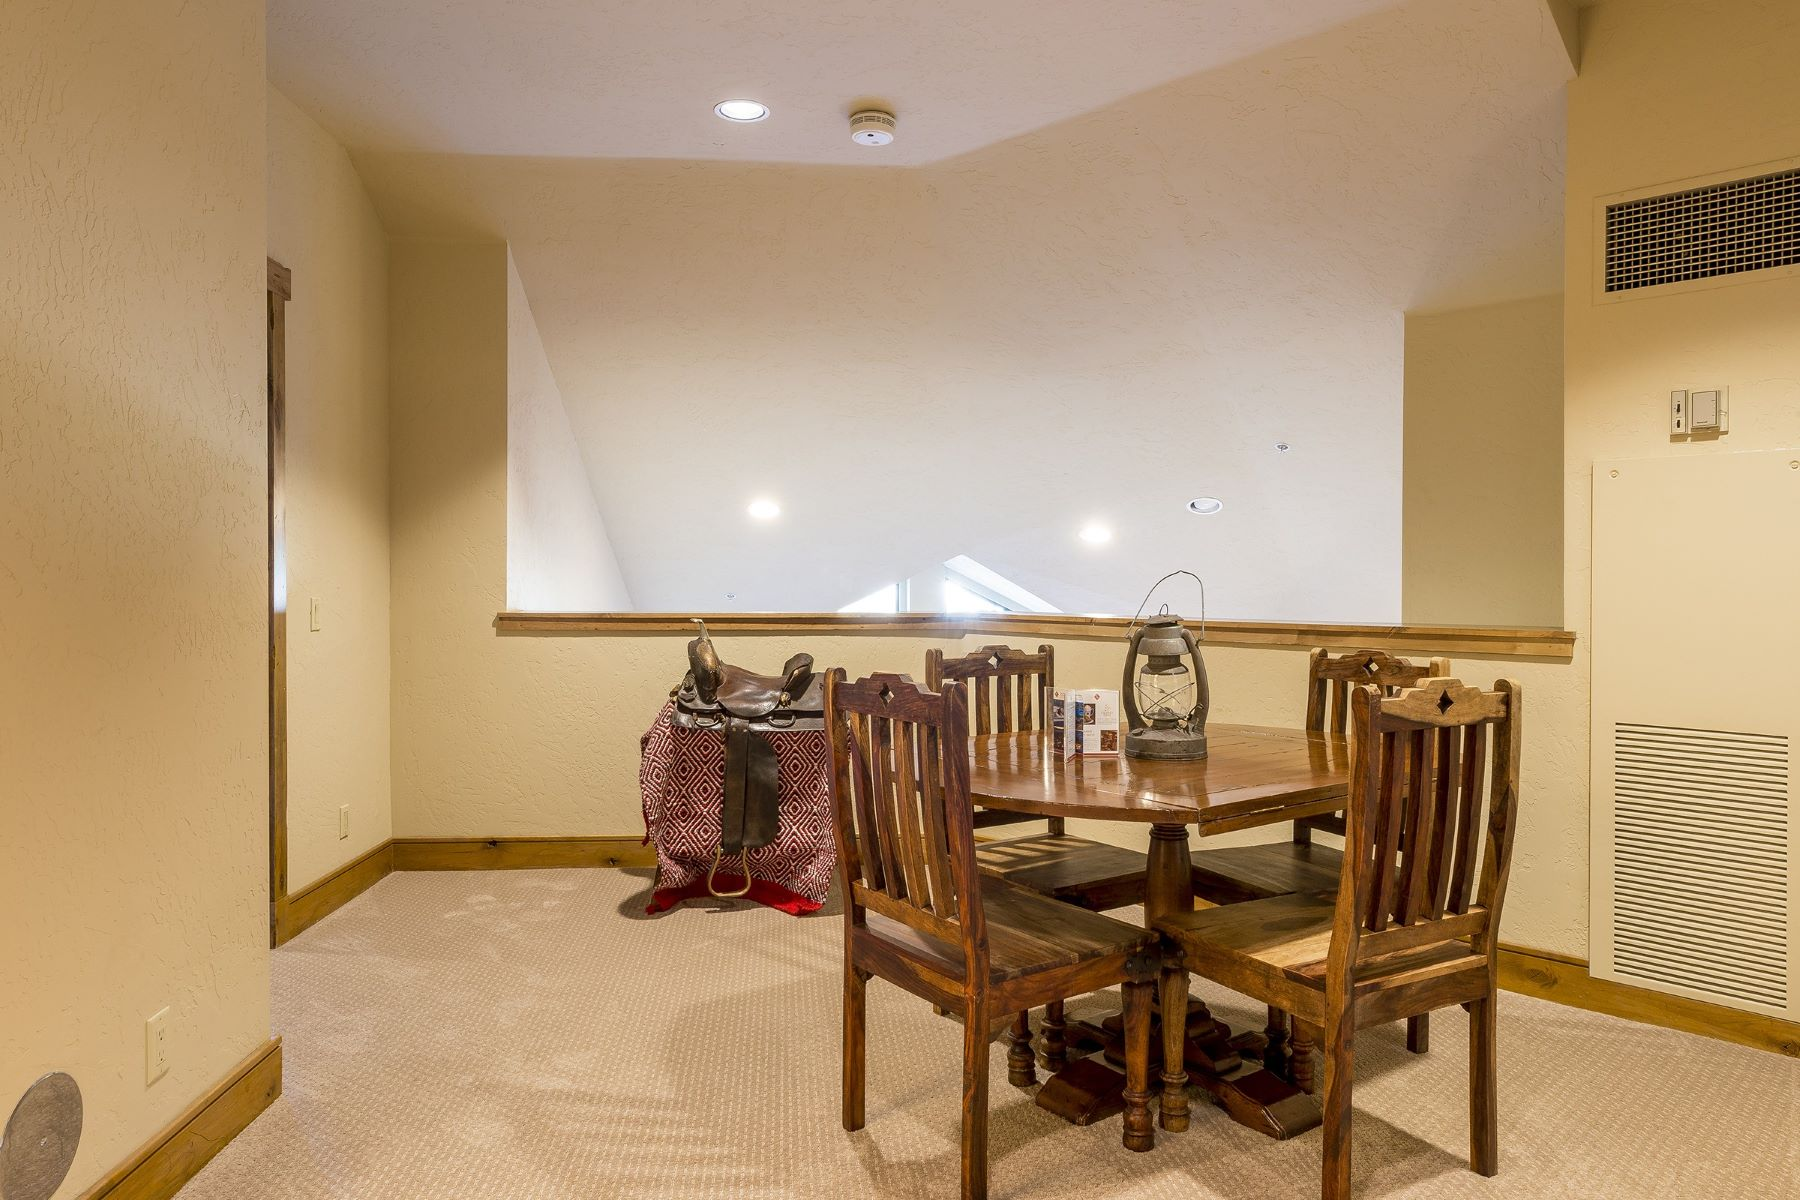 Additional photo for property listing at Penthouse at the Steamboat Grand 1/4 Share Equals 13 Weeks of Use Per Year 2300 Mt. Werner Circle QIIIA & QIIIB Steamboat Springs, Colorado 80487 United States